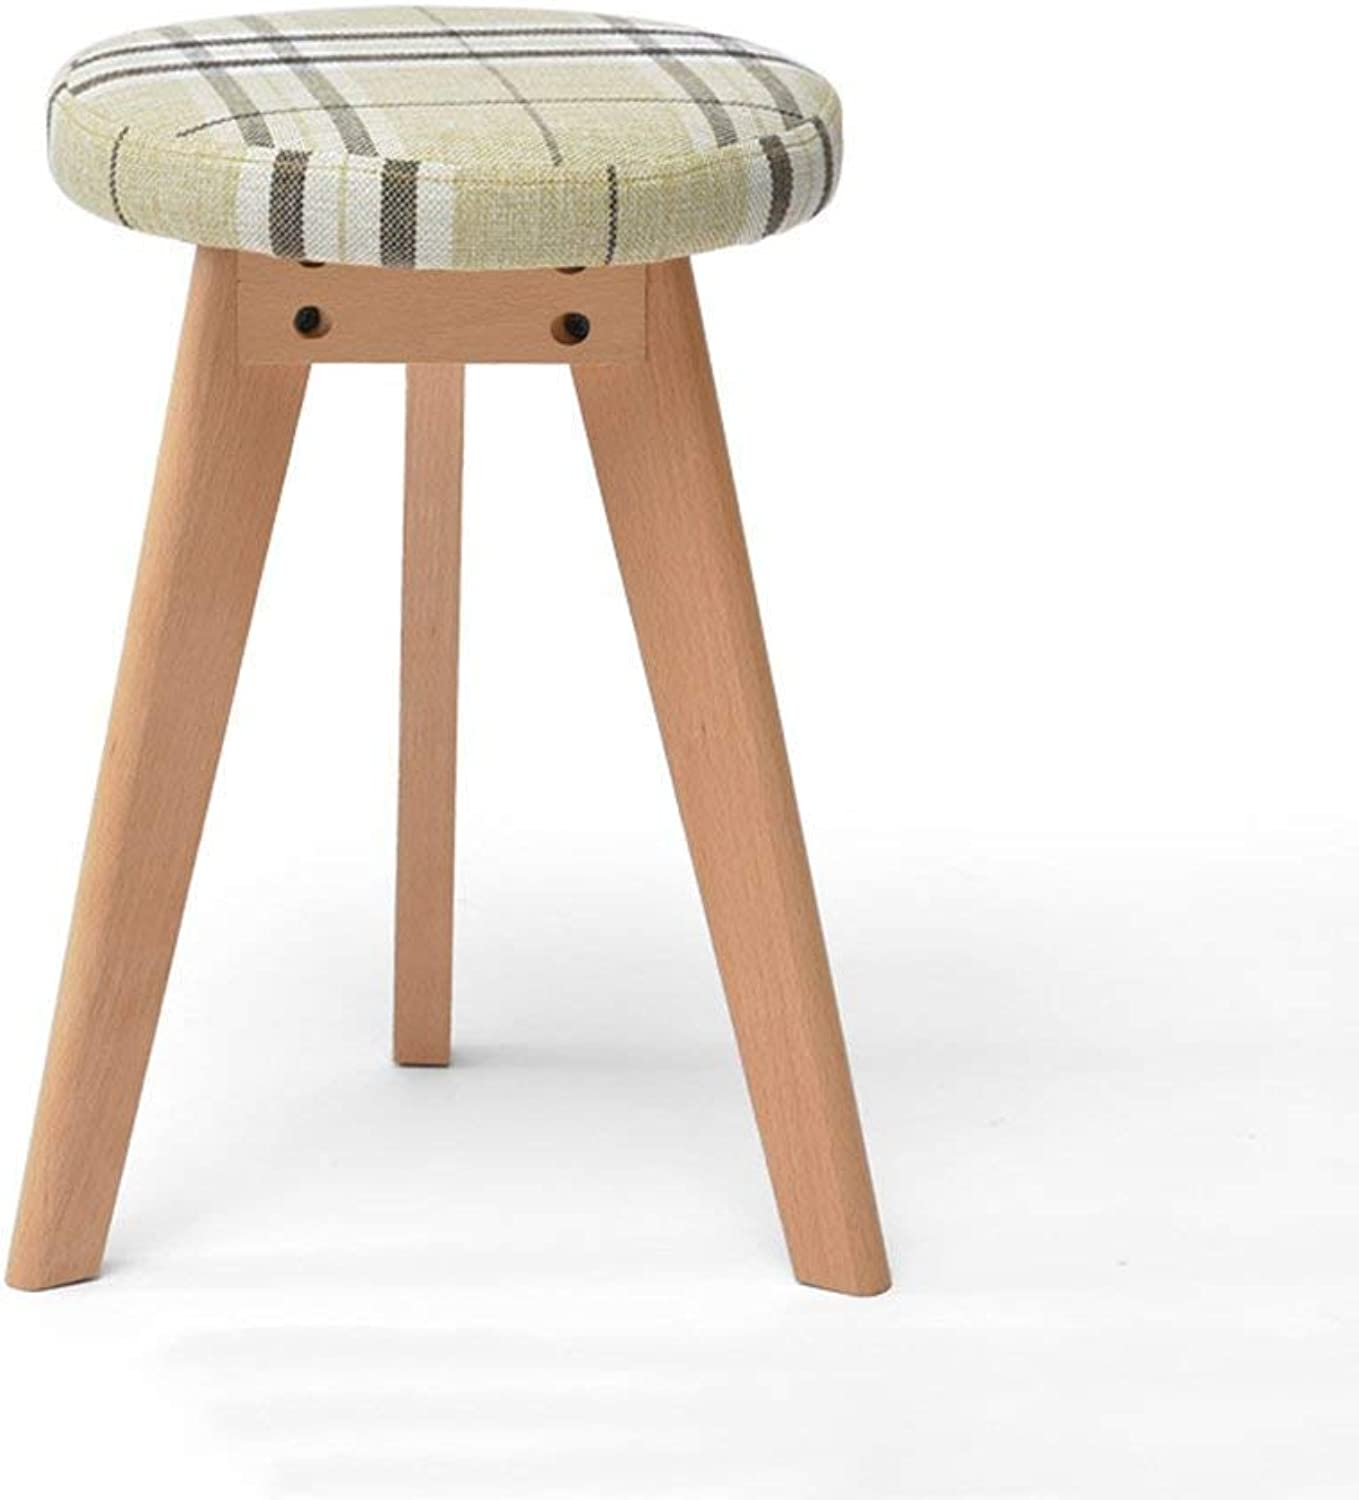 STTS Chair- Bar Stool Solid Wood + Fabric + Pu Creative Fashion Non-Slip Durable Household Practical Stool